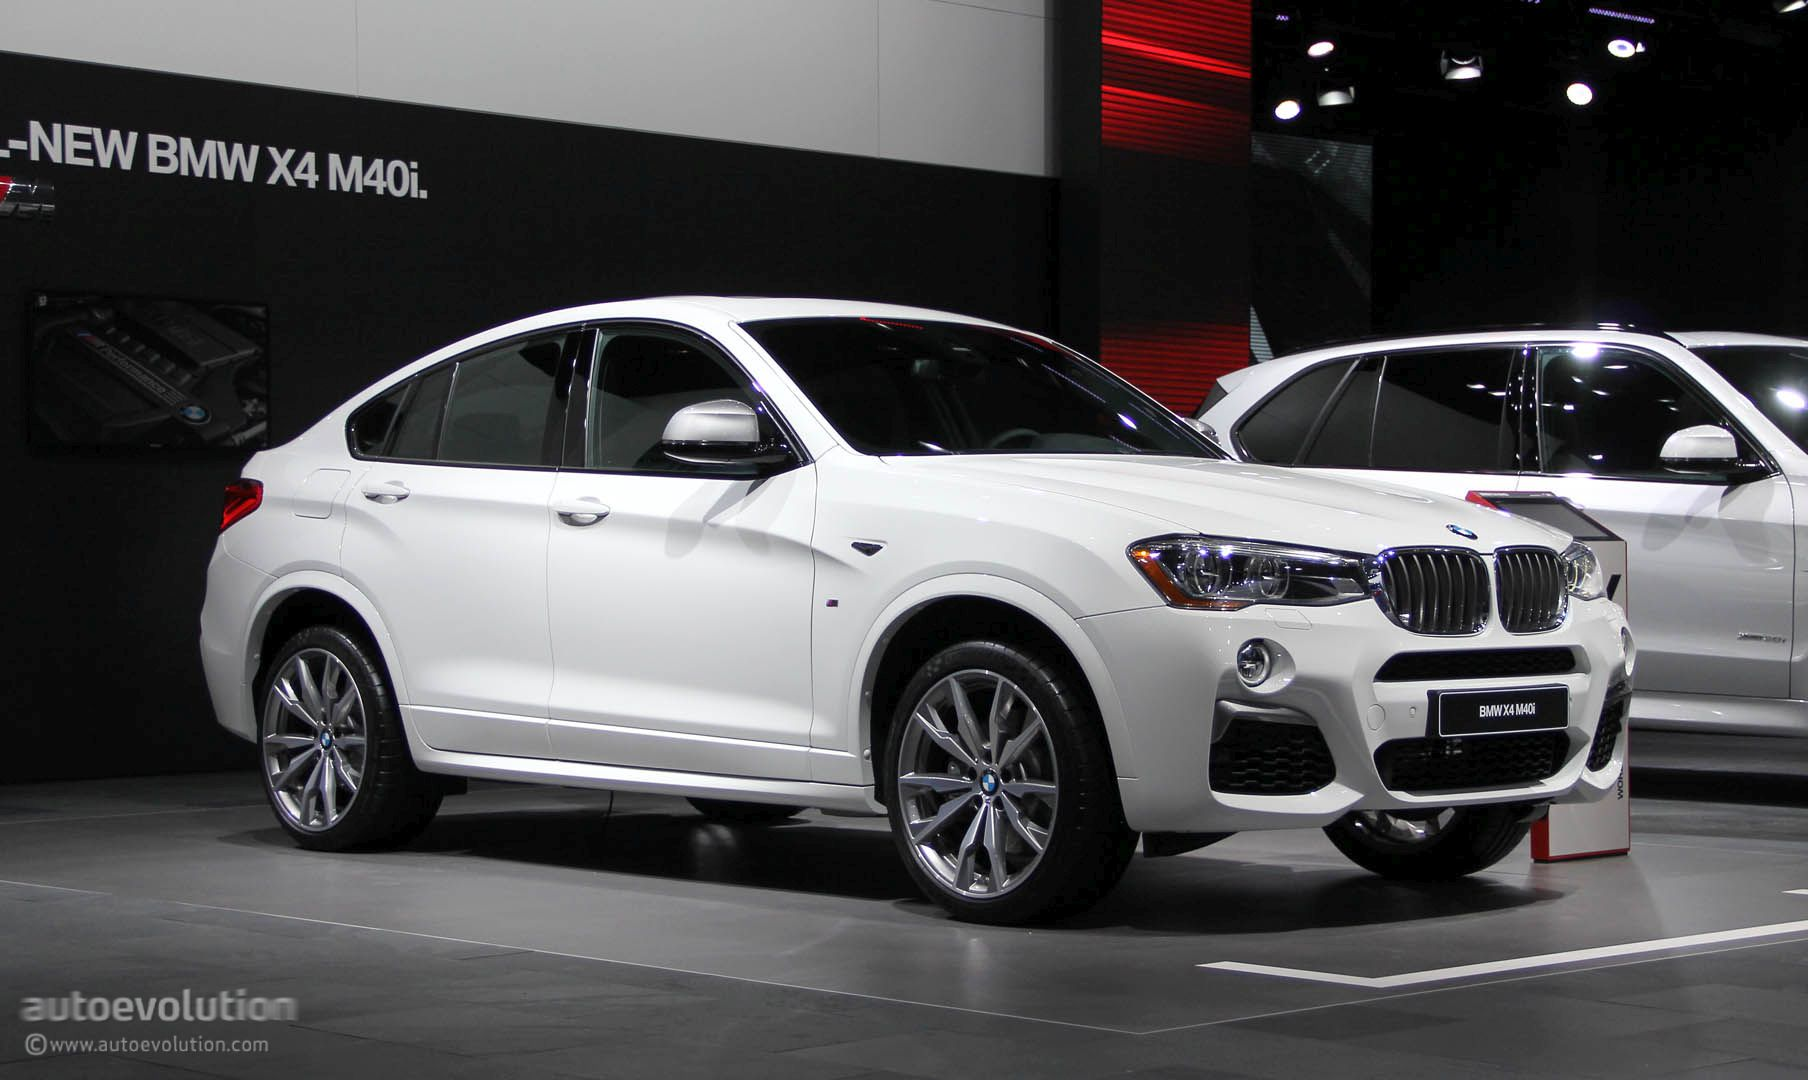 bmw x4 m40i comes to detroit feels like a corporate way of having fun autoevolution. Black Bedroom Furniture Sets. Home Design Ideas